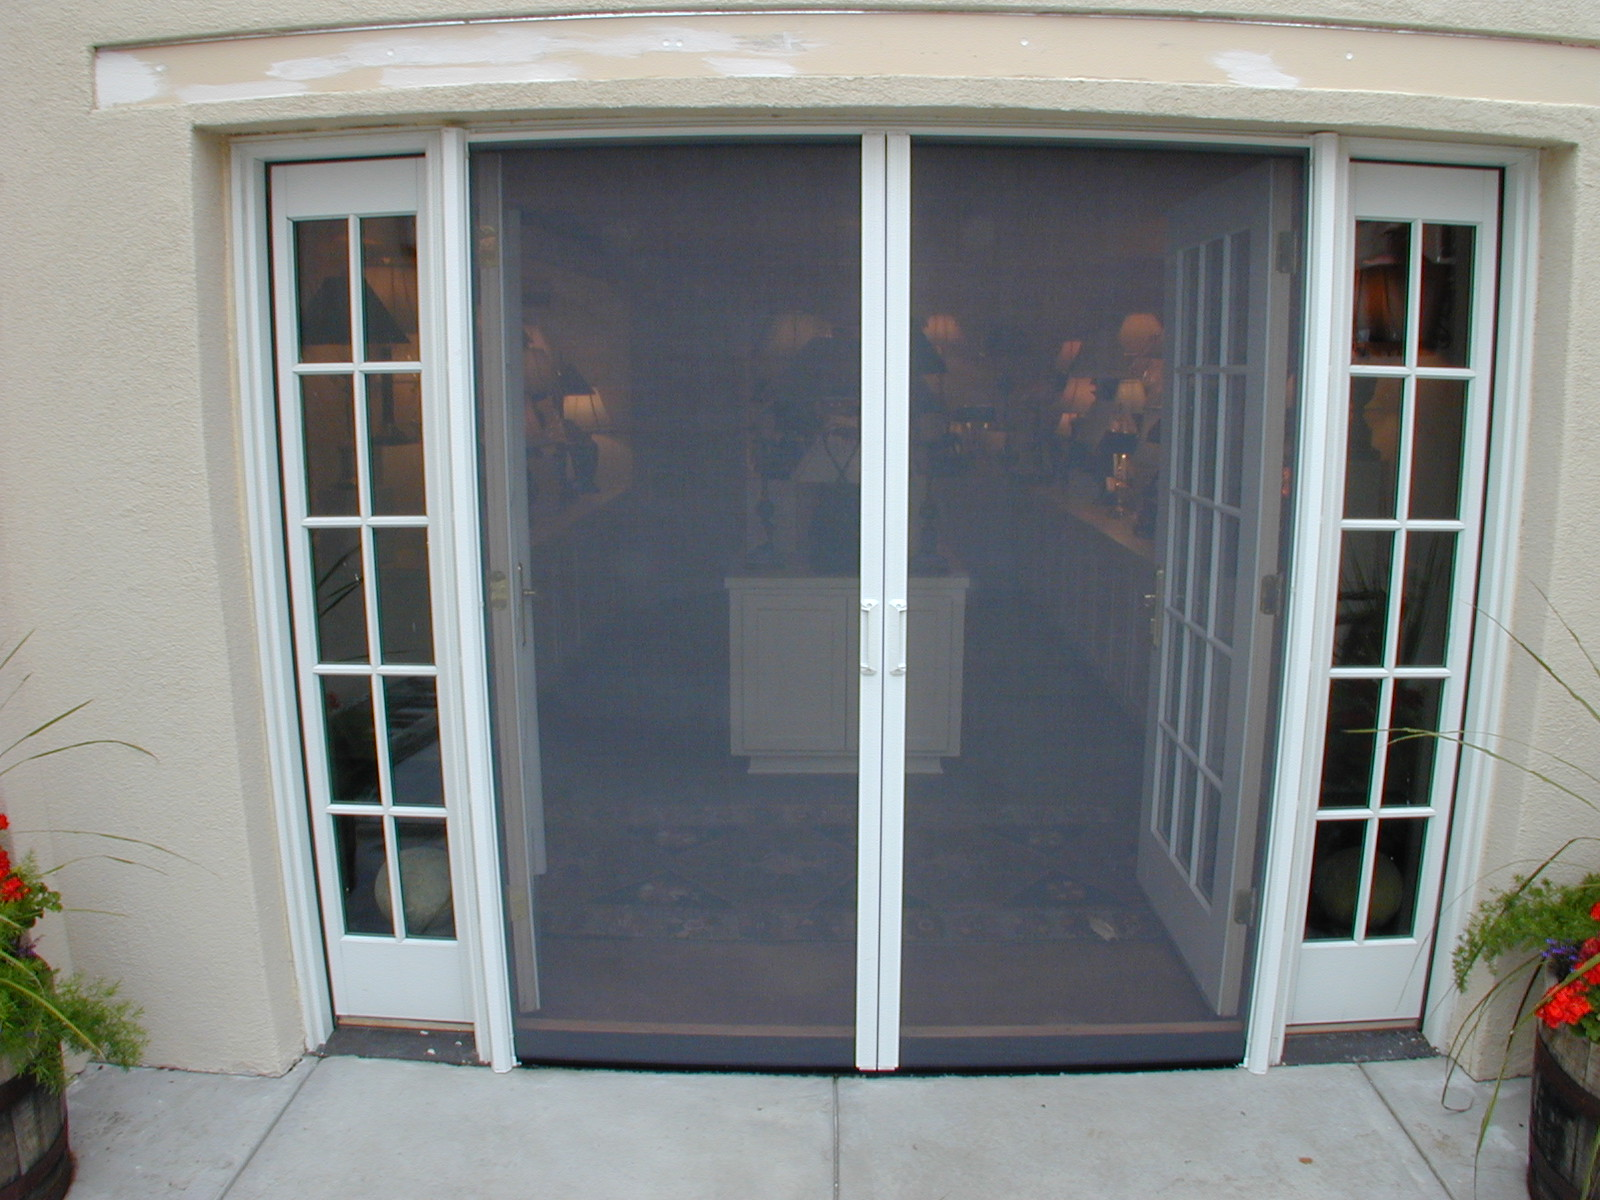 Screens in use on french doors